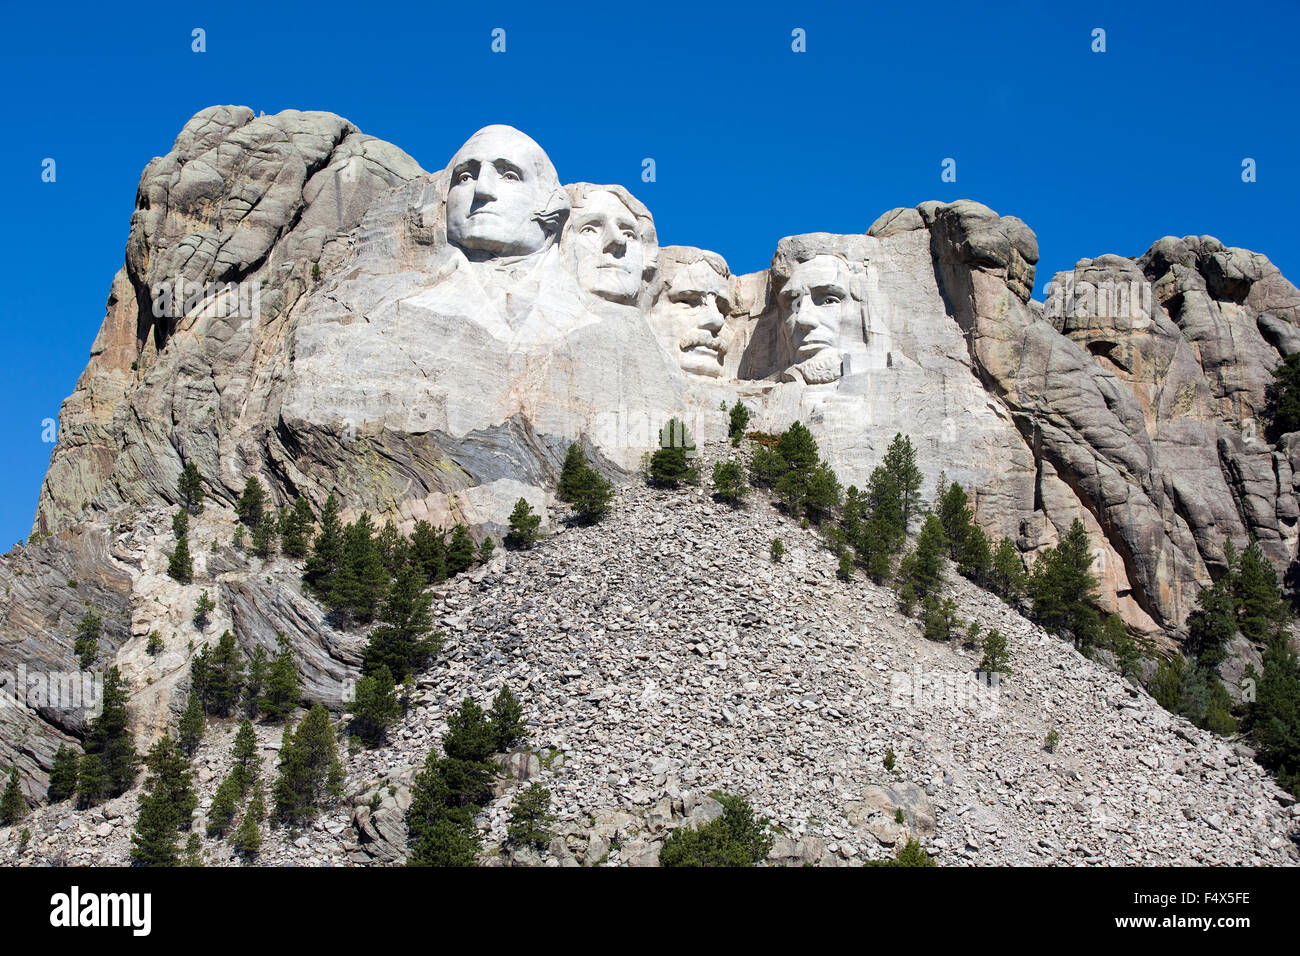 Mount Rushmore National Memorial is located in southwest South Dakota, USA. Stock Photo